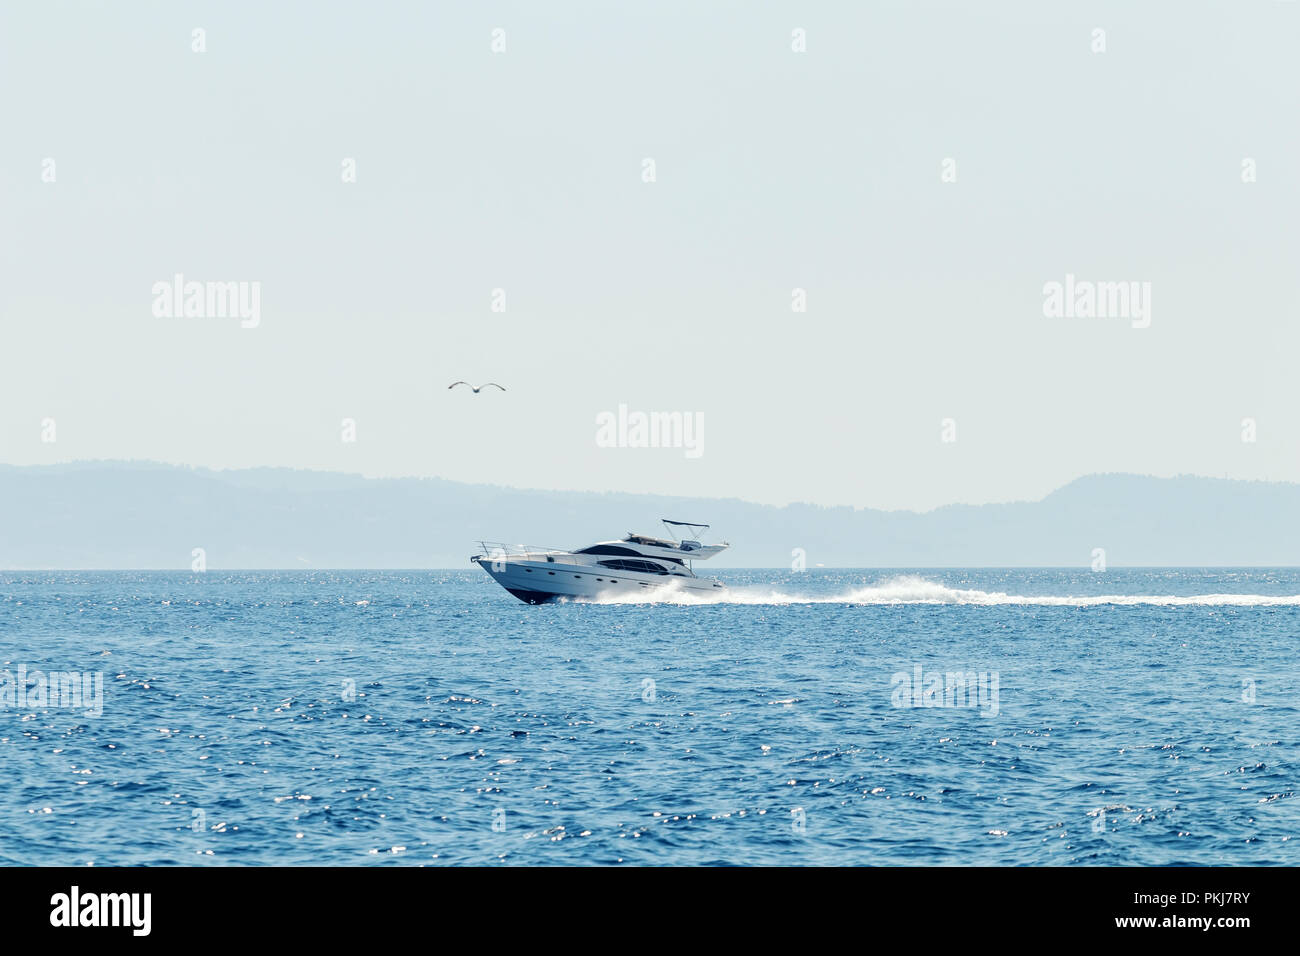 Luxury motor boat cruising in blue sea, Summer vacation - Stock Image